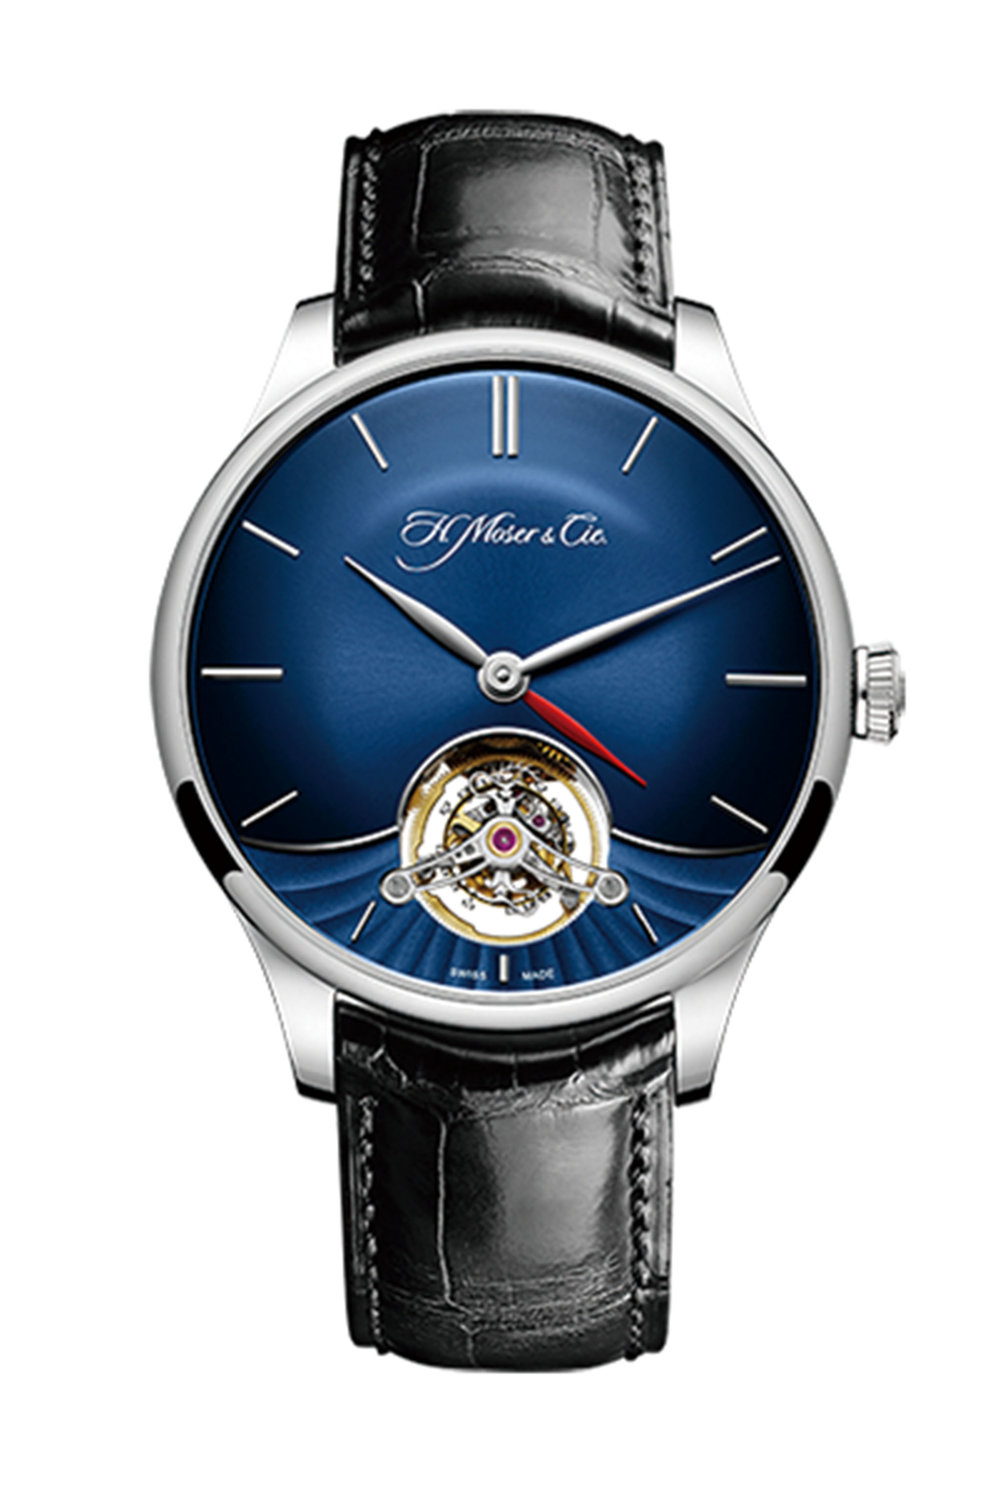 9.Venturer Tourbillon Dual Time White Gold Blue Fumé Dial by H. Moser & Cie Price upon request,  palladiocanada.com